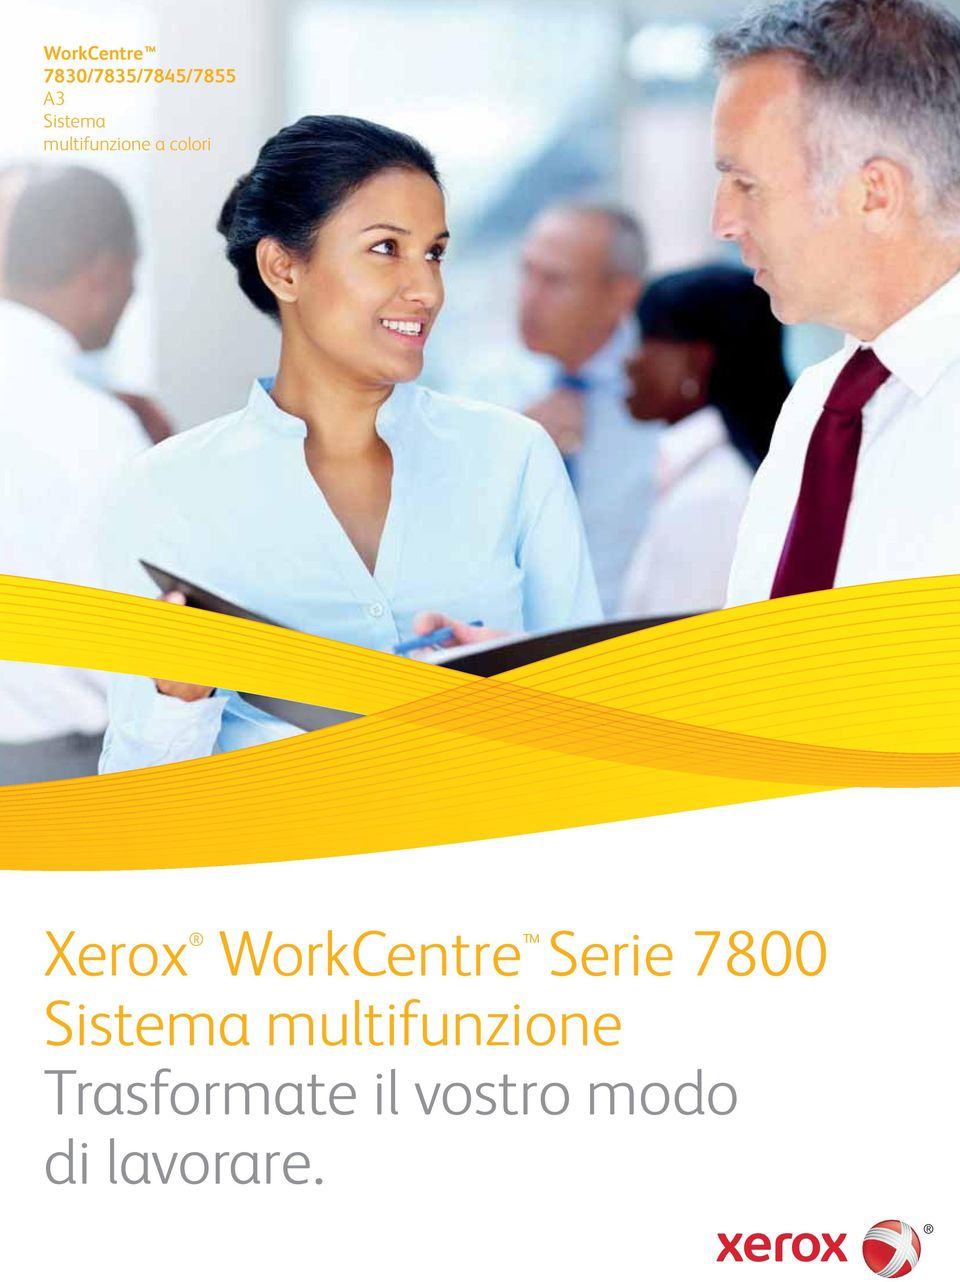 WorkCentre Serie 7800 Sistema